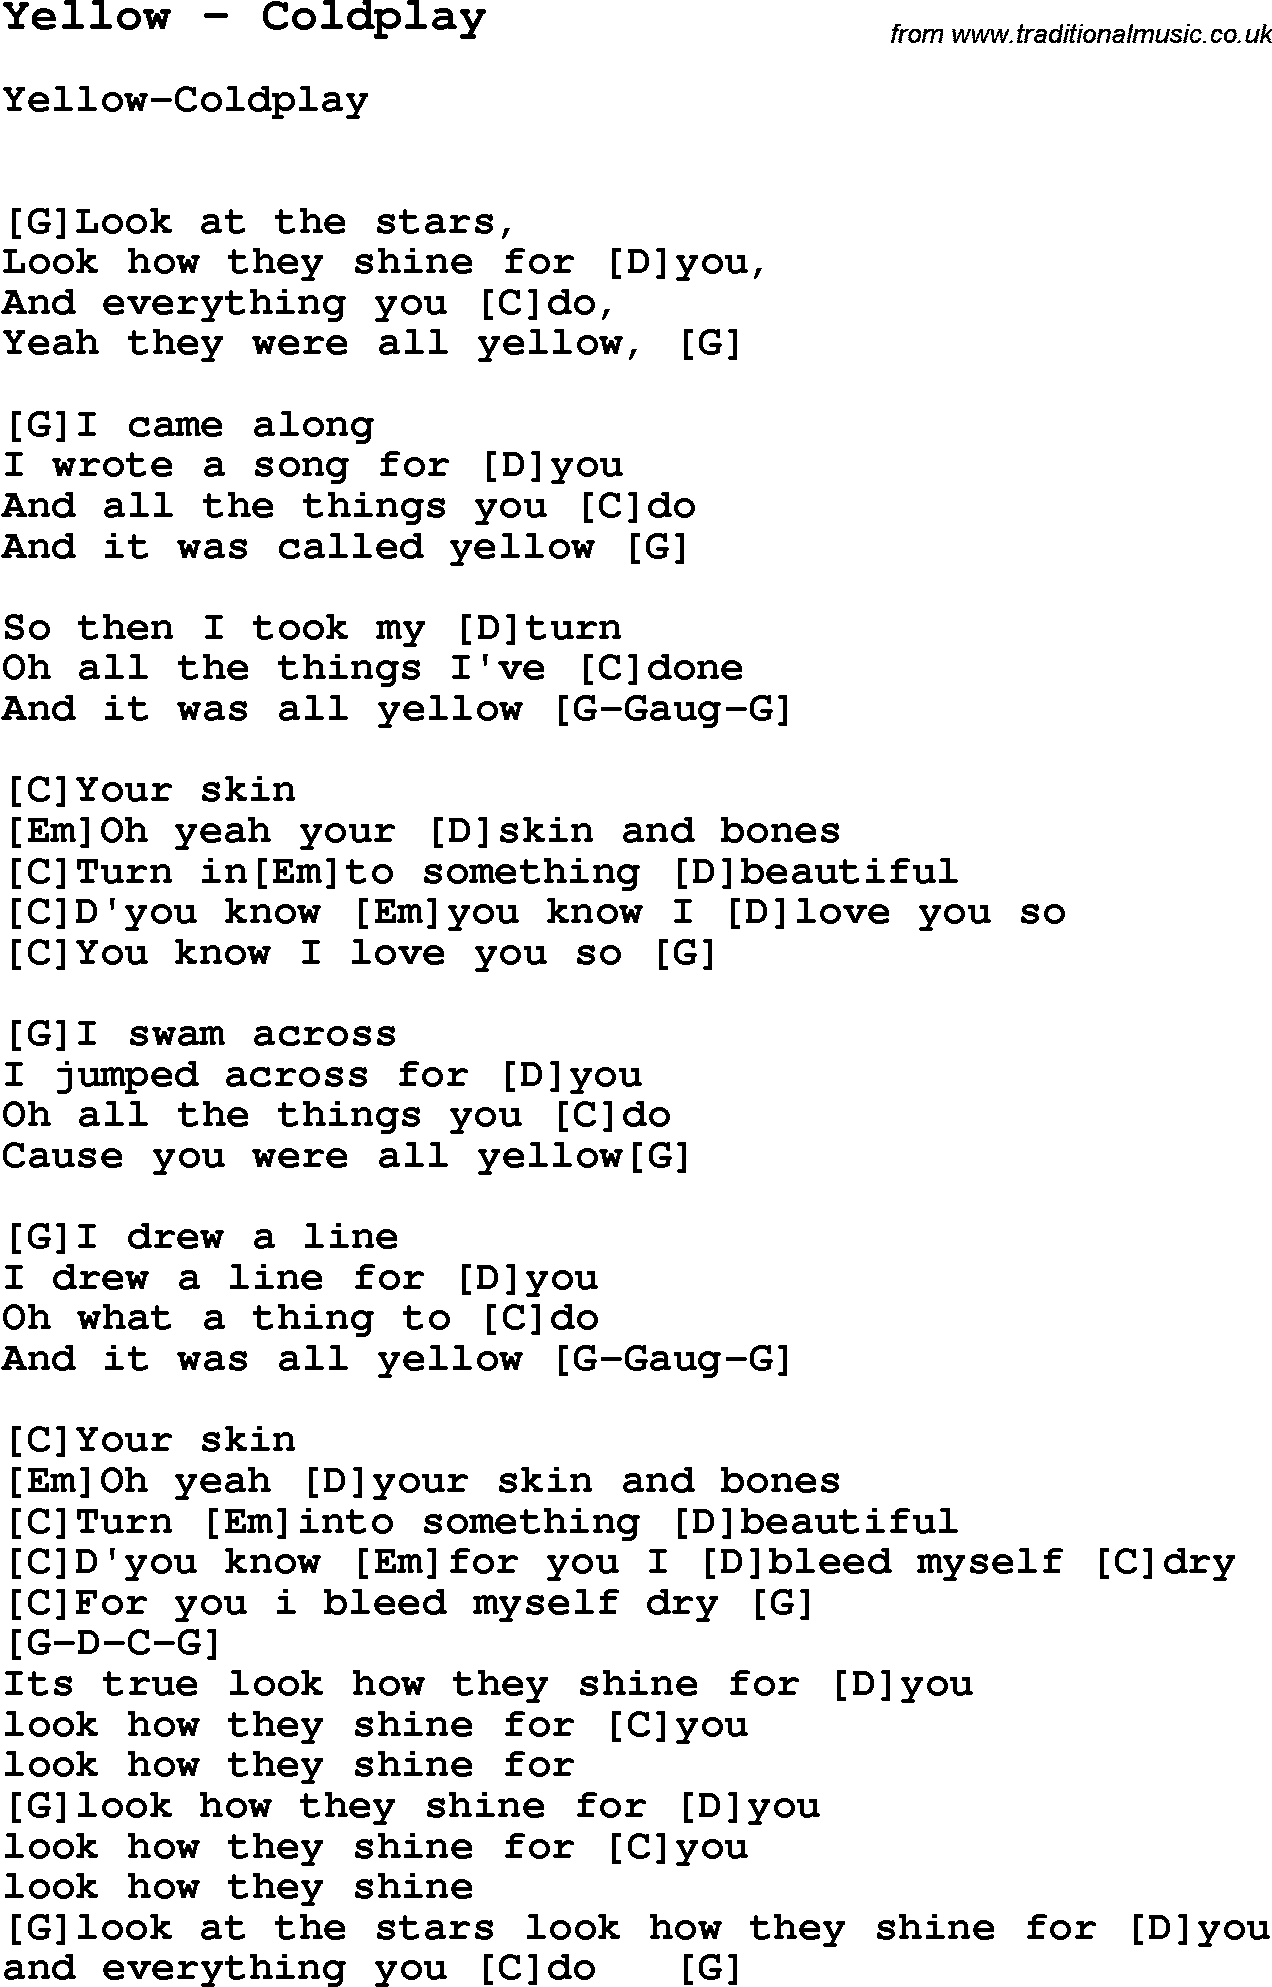 Song Yellow By Coldplay With Lyrics For Vocal Performance And Accompaniment Chords For Ukulele Guitar Ban Gitarre Lieder Gitarren Songs Gitarrenakkorde Songs